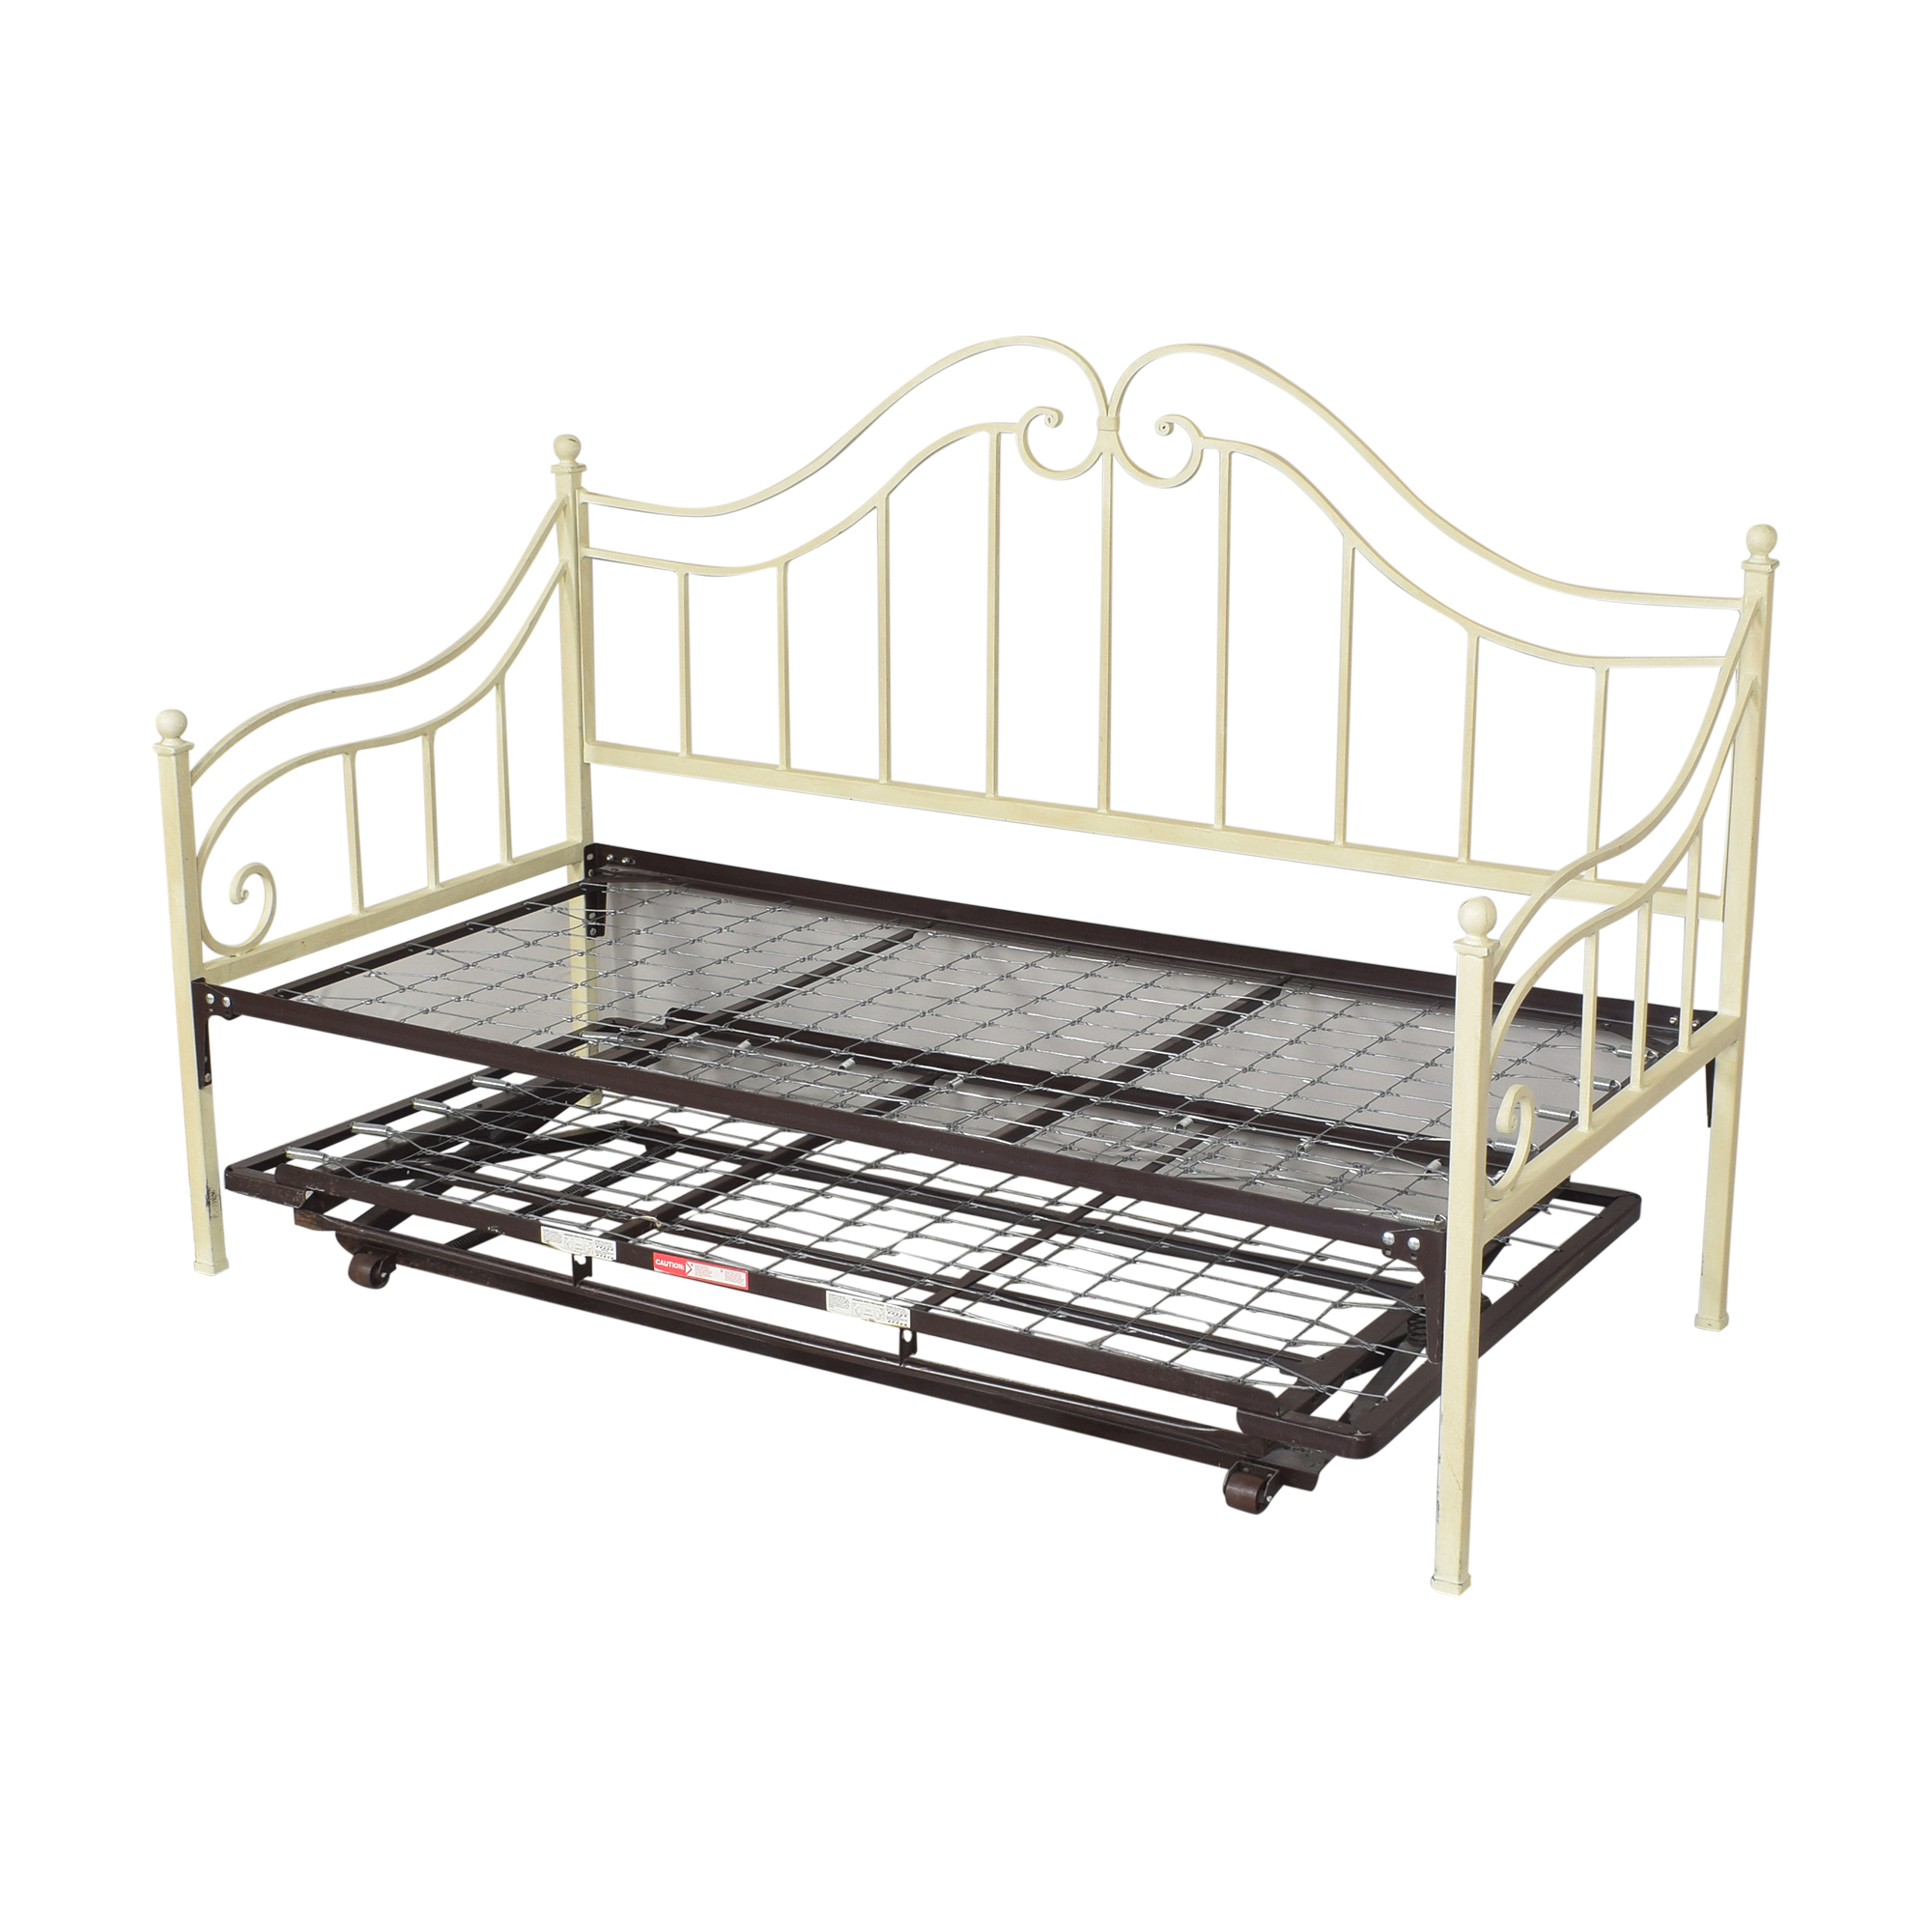 Ethan Allen Ethan Allen Openwork Twin Trundle Daybed nyc